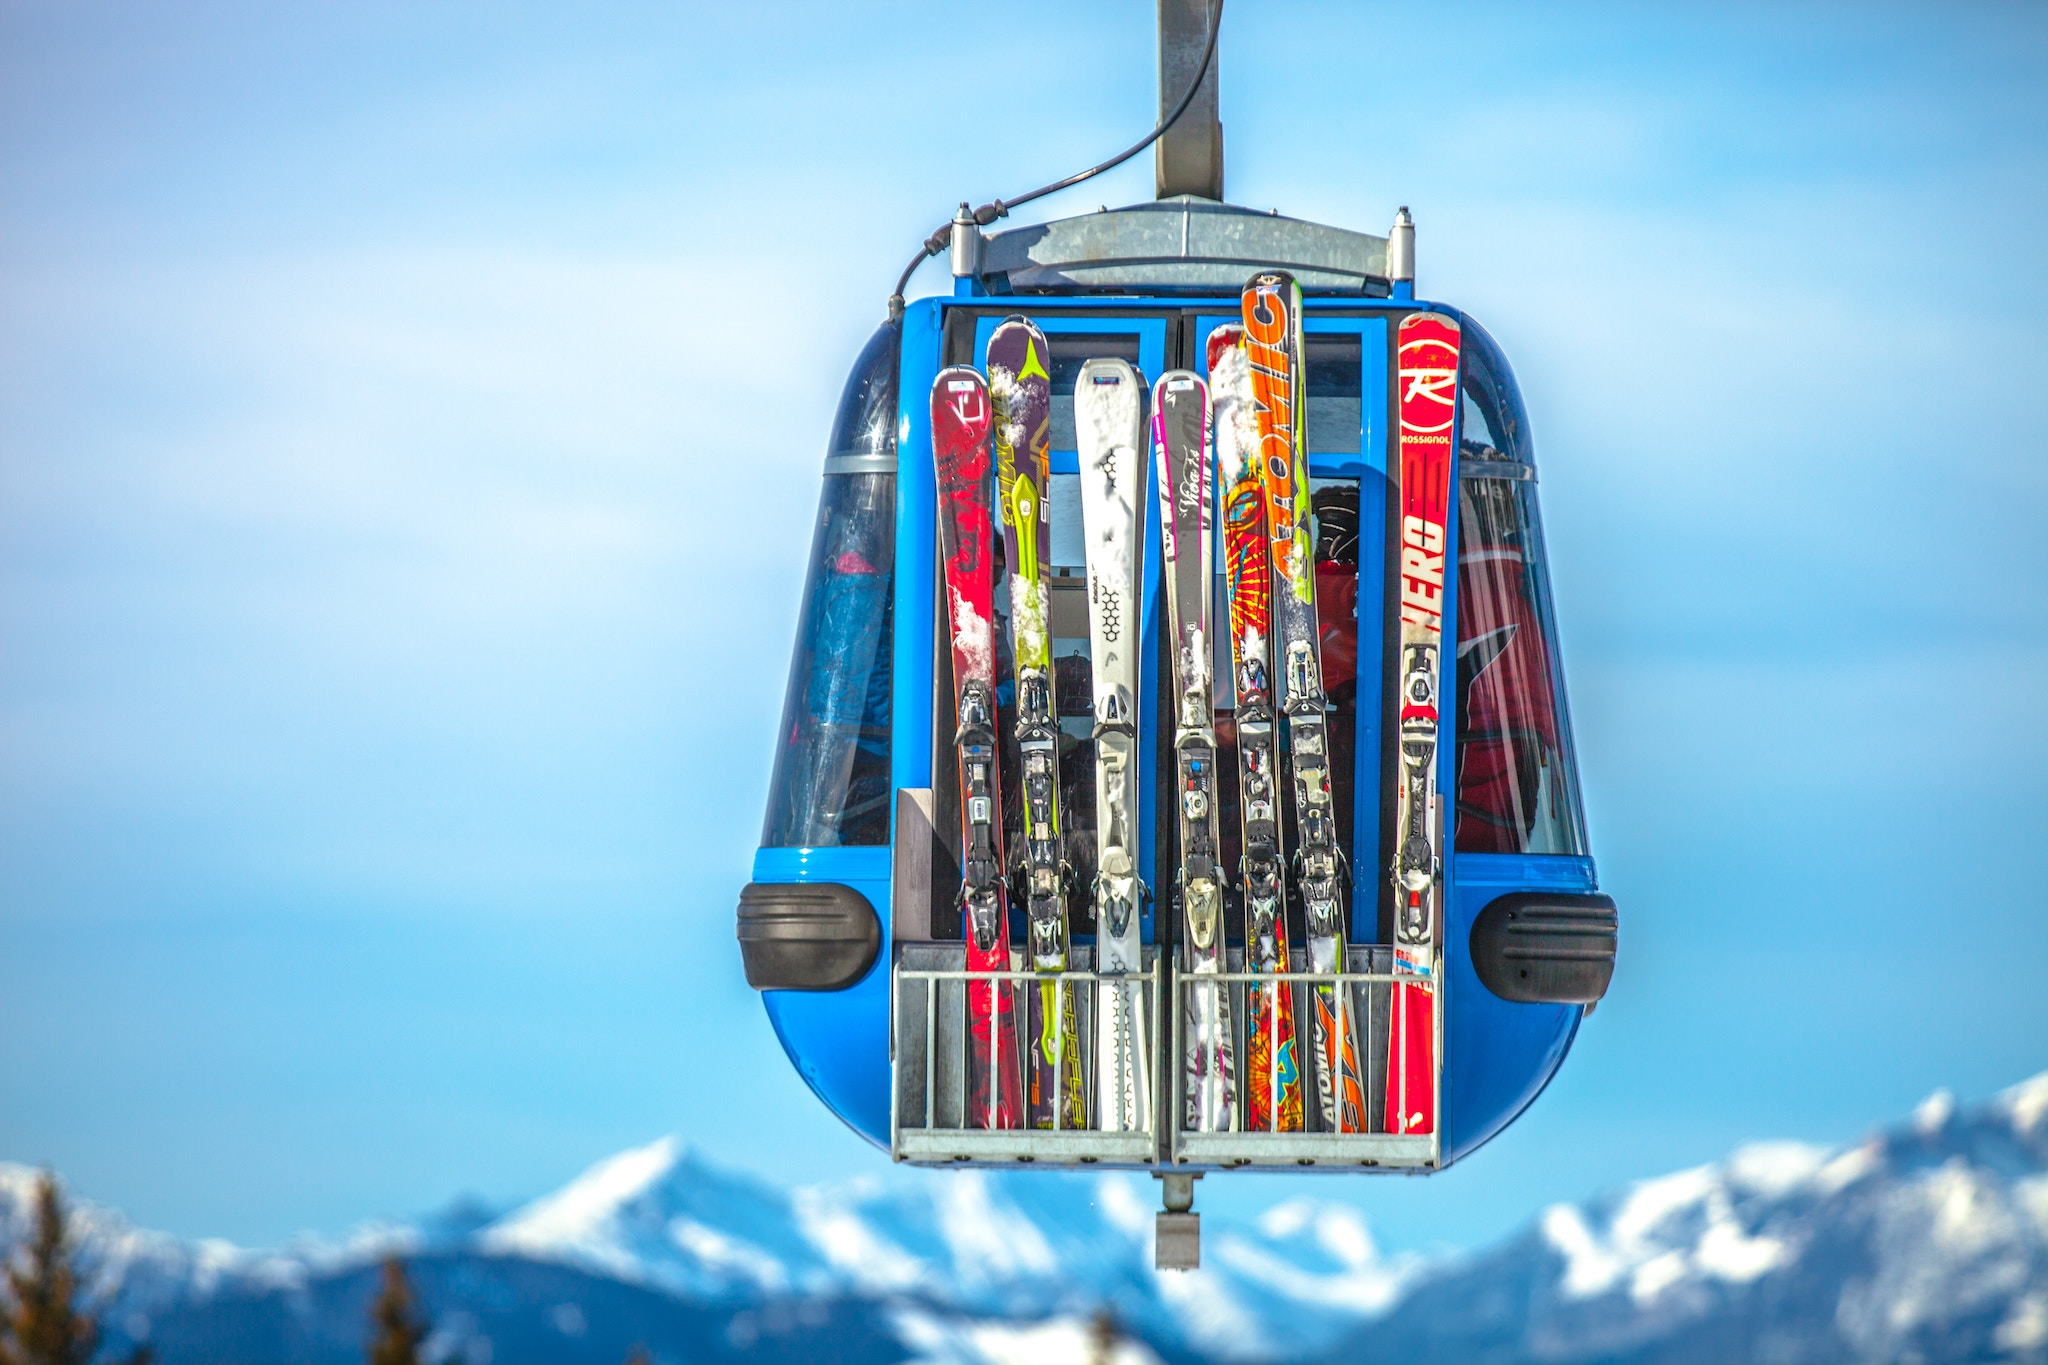 23bc4fa5f239 Gear up to hit the slopes in style this season with eco-friendly ski ...